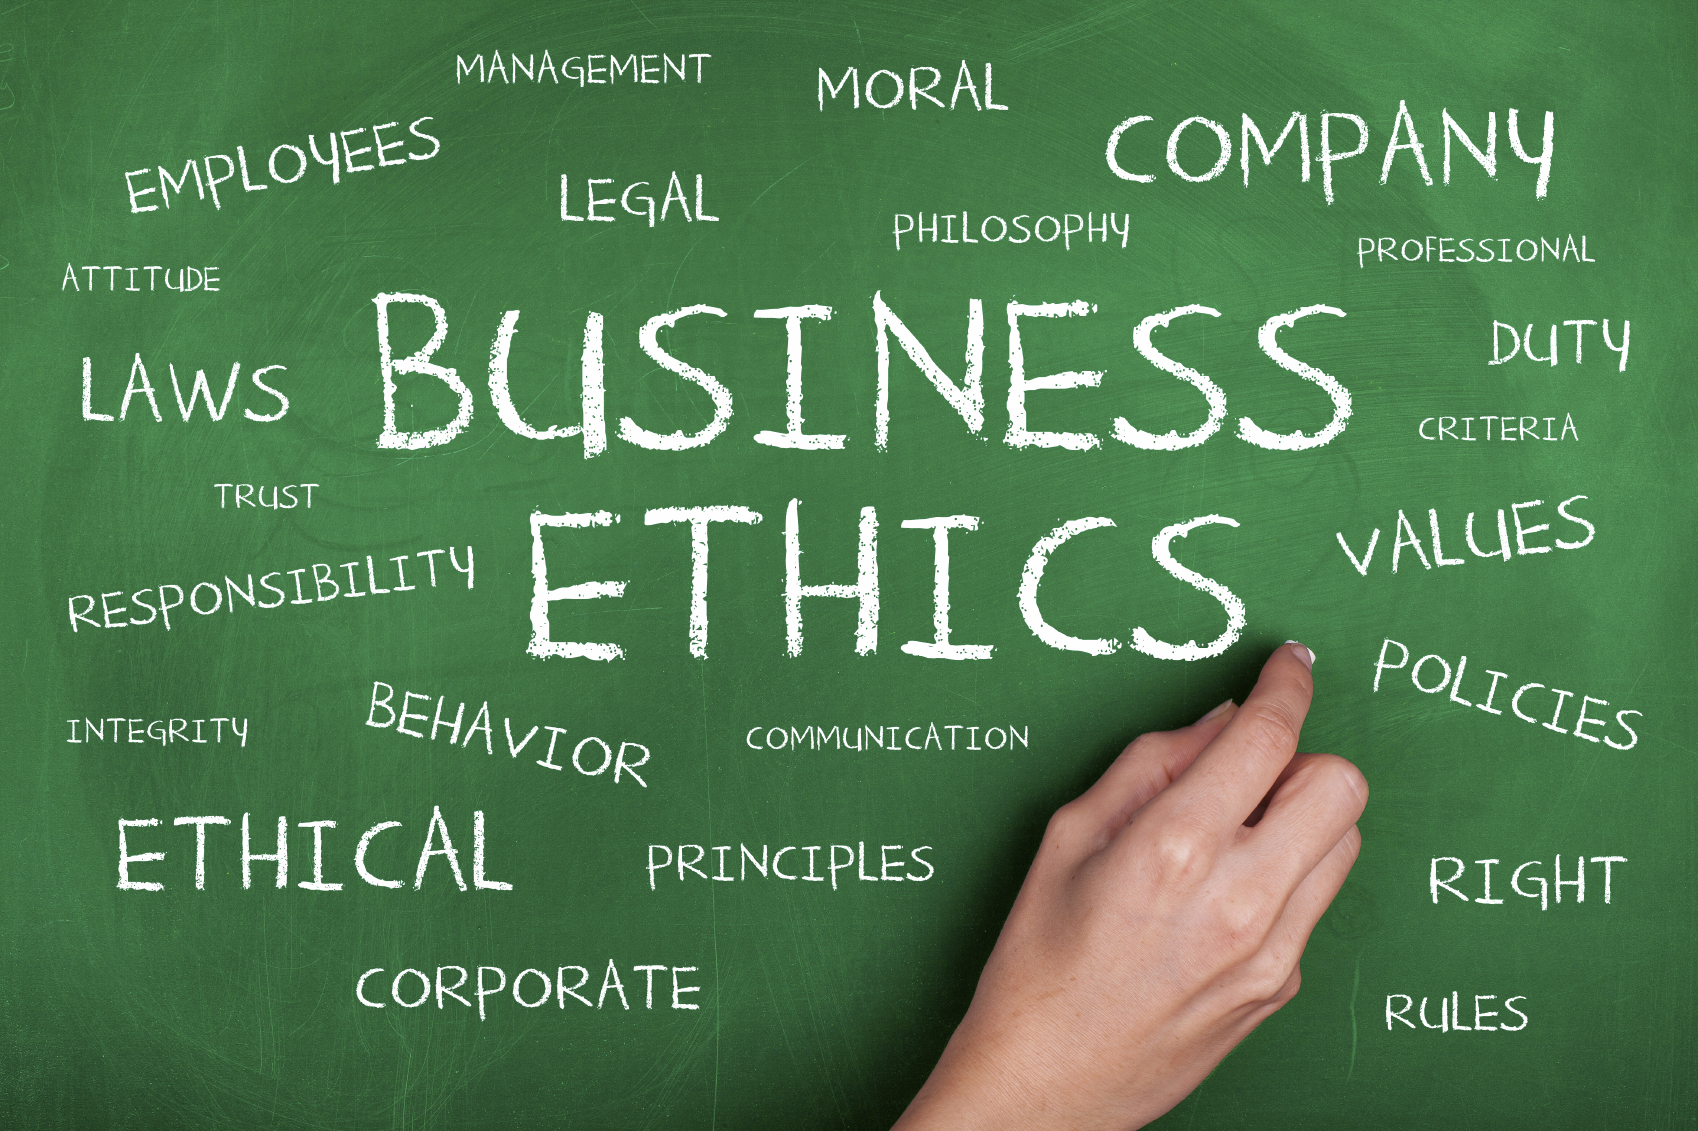 in your own words describe what ethics means to you It covers sustainability, social impact and ethics, and done correctly should  my  own definition is that csr is about how companies manage the  definition now  focuses on the impact of how you manage your core business.